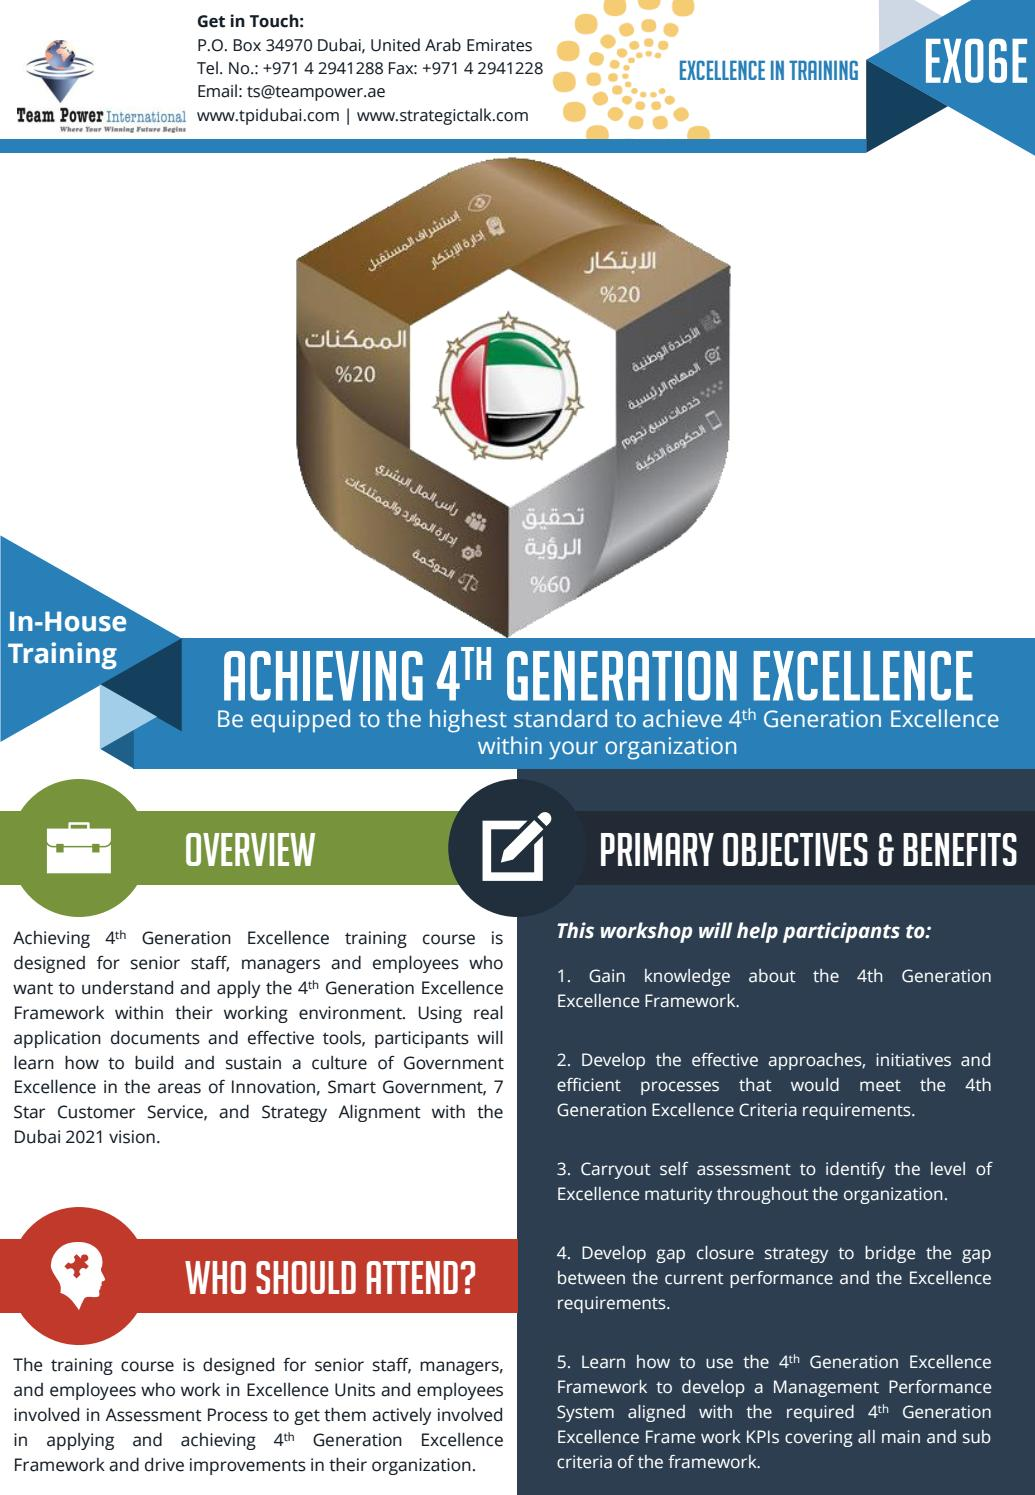 ex06e achieving 4th generation excellence by team power